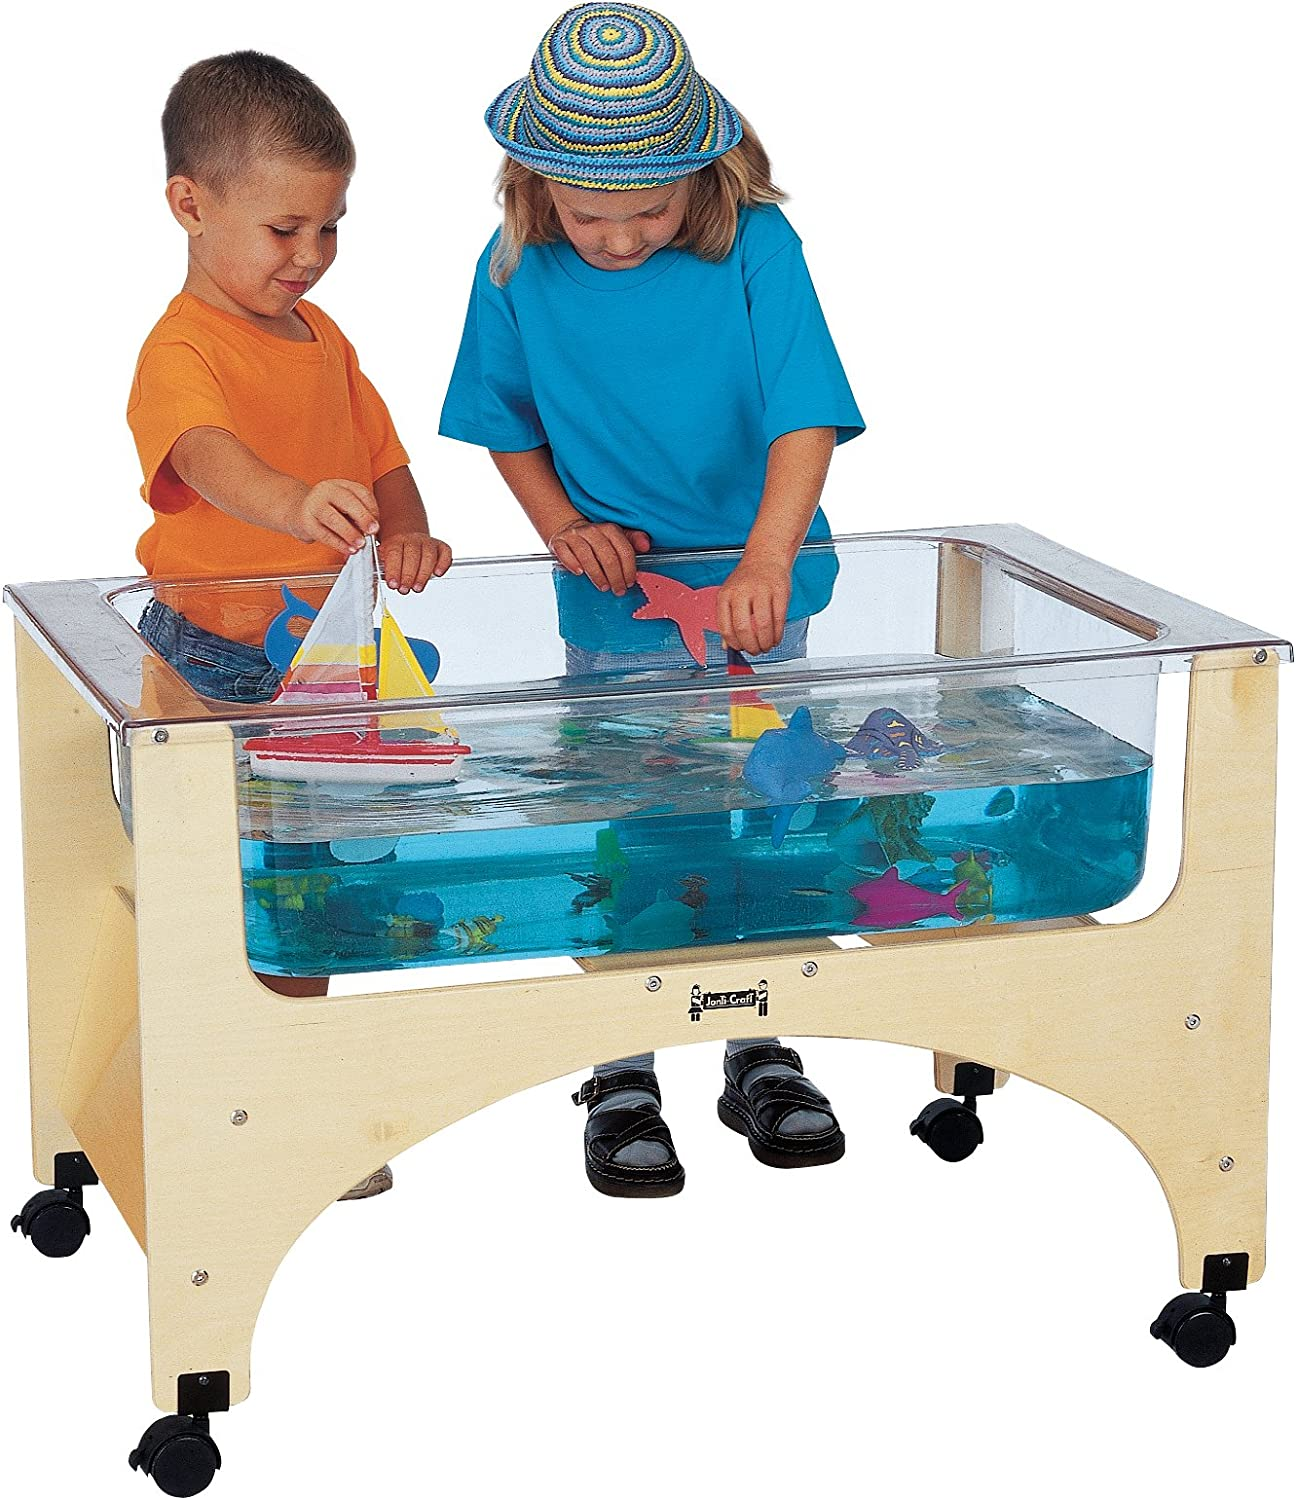 Top 13 Best Water Tables For Kids And Toddlers ( 2020 Reviews) 10